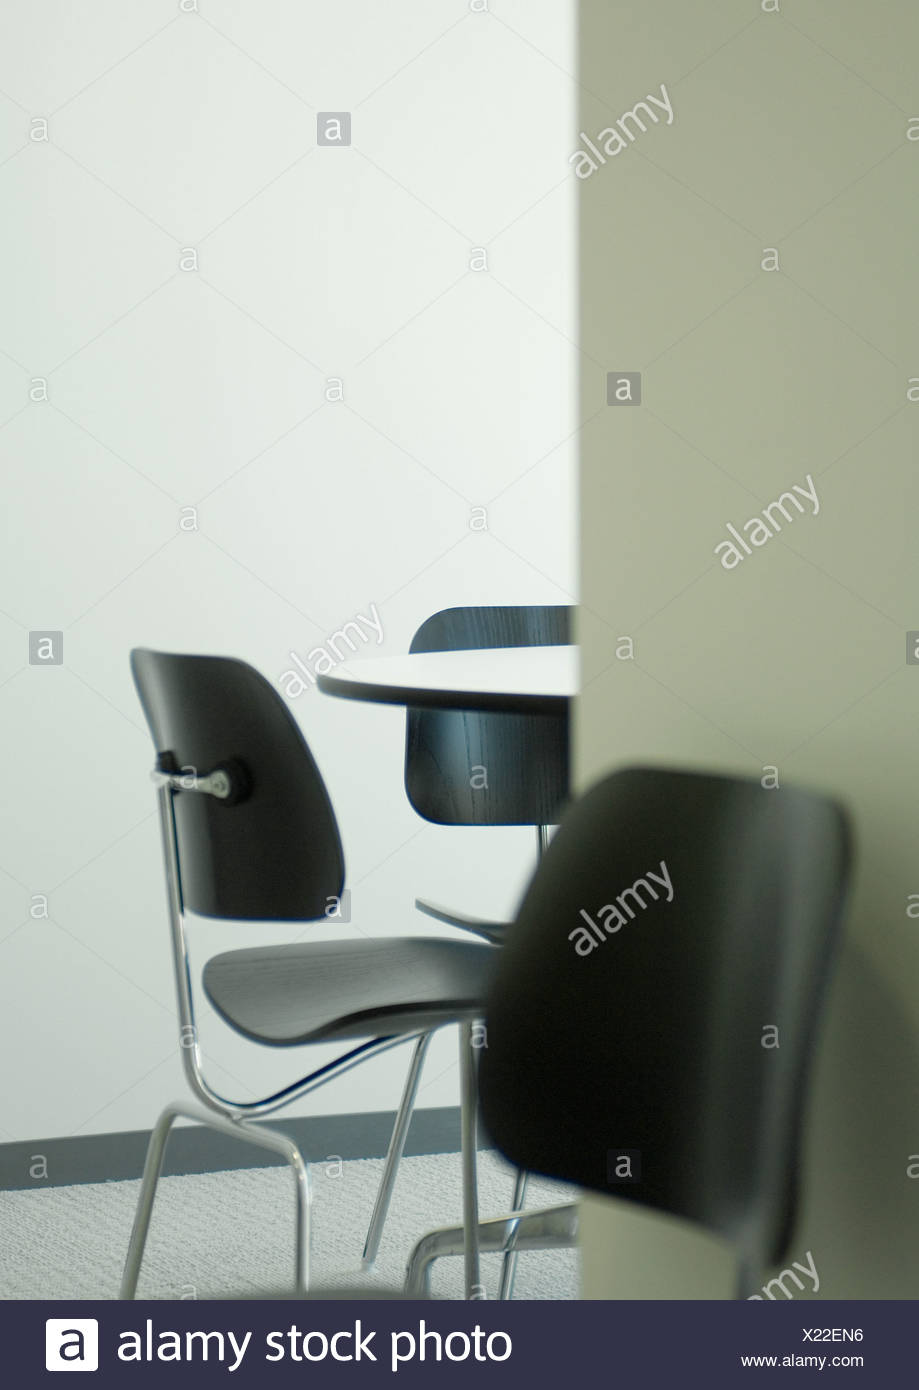 Astonishing Empty Table And Chairs In Office Break Room Close Up Stock Interior Design Ideas Gentotryabchikinfo